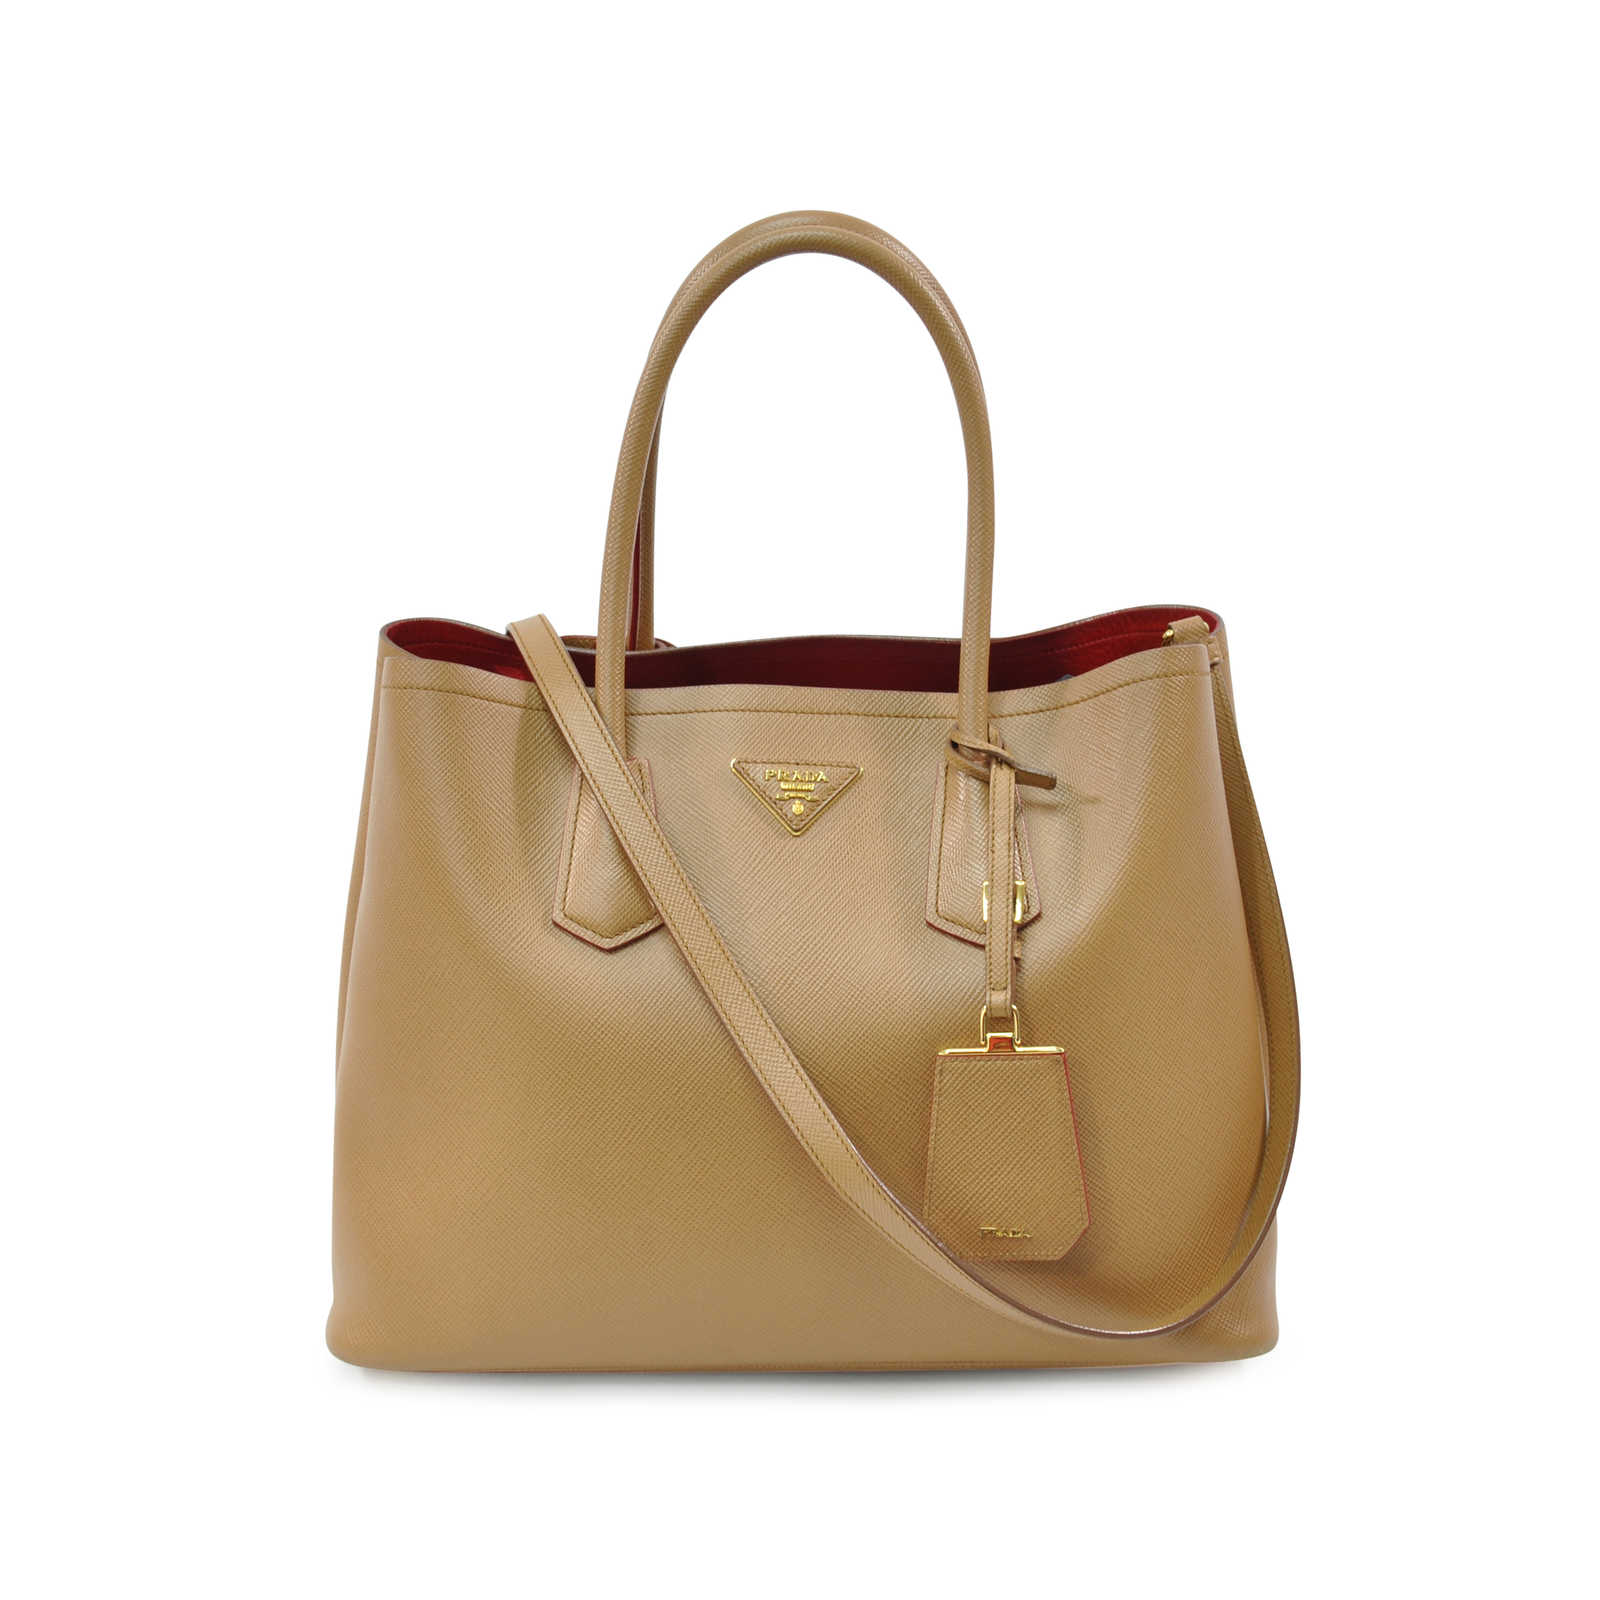 634cadc8ea7f Authentic Second Hand Prada Cuir Double Tote Bag (PSS-328-00004) ...